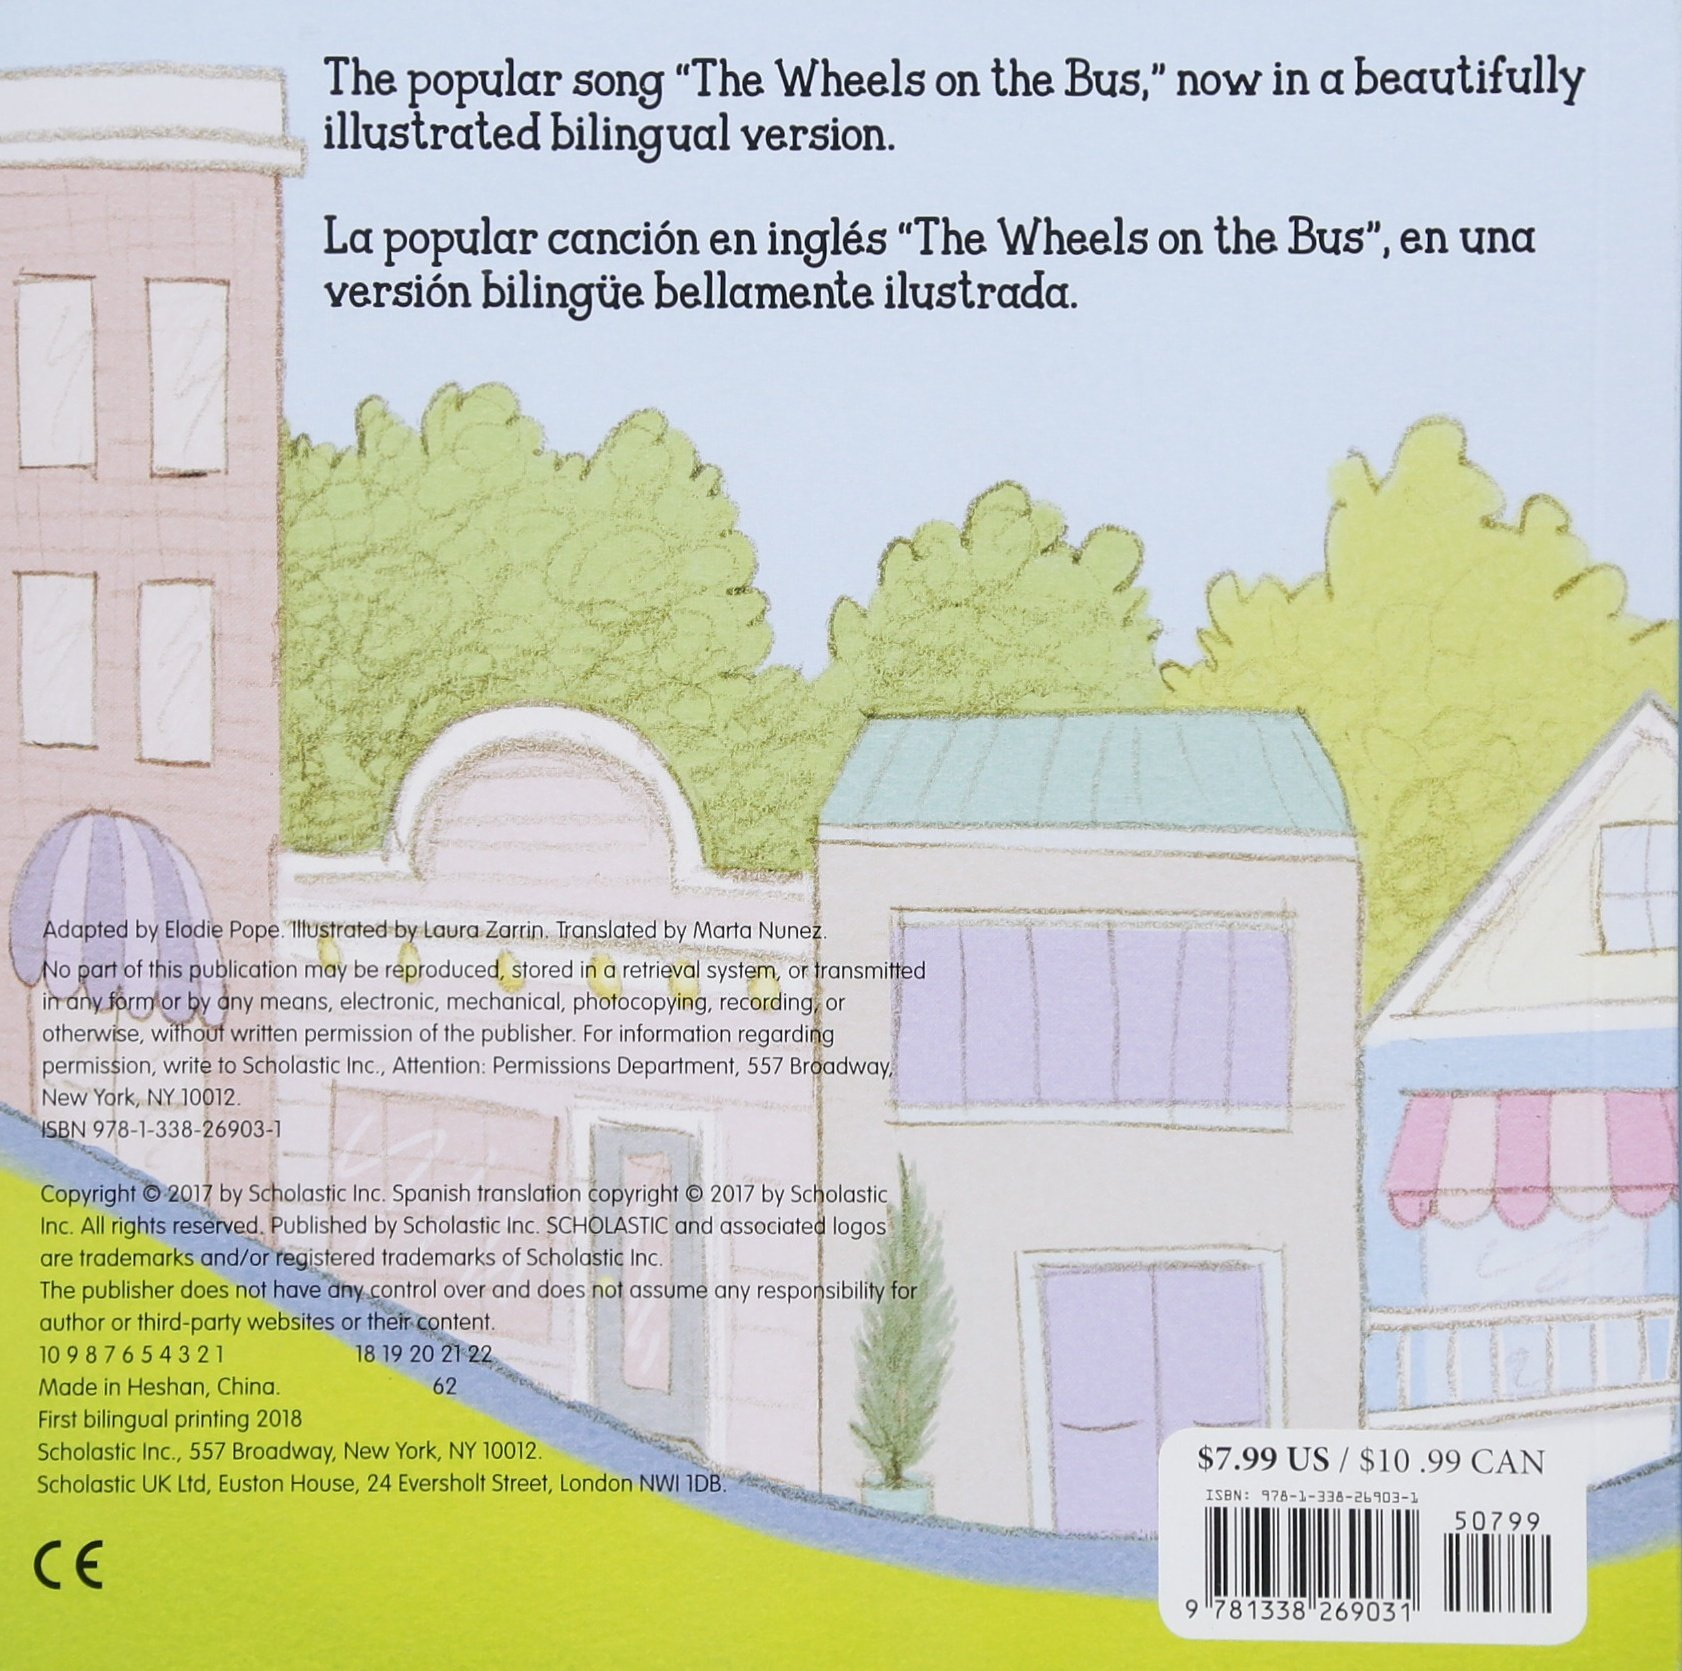 Amazon.com: The Wheels on the Bus / Las ruedas del autobús (Bilingual) (Spanish and English Edition) (9781338269031): Elodie Pope, Laura Zarrin: Books